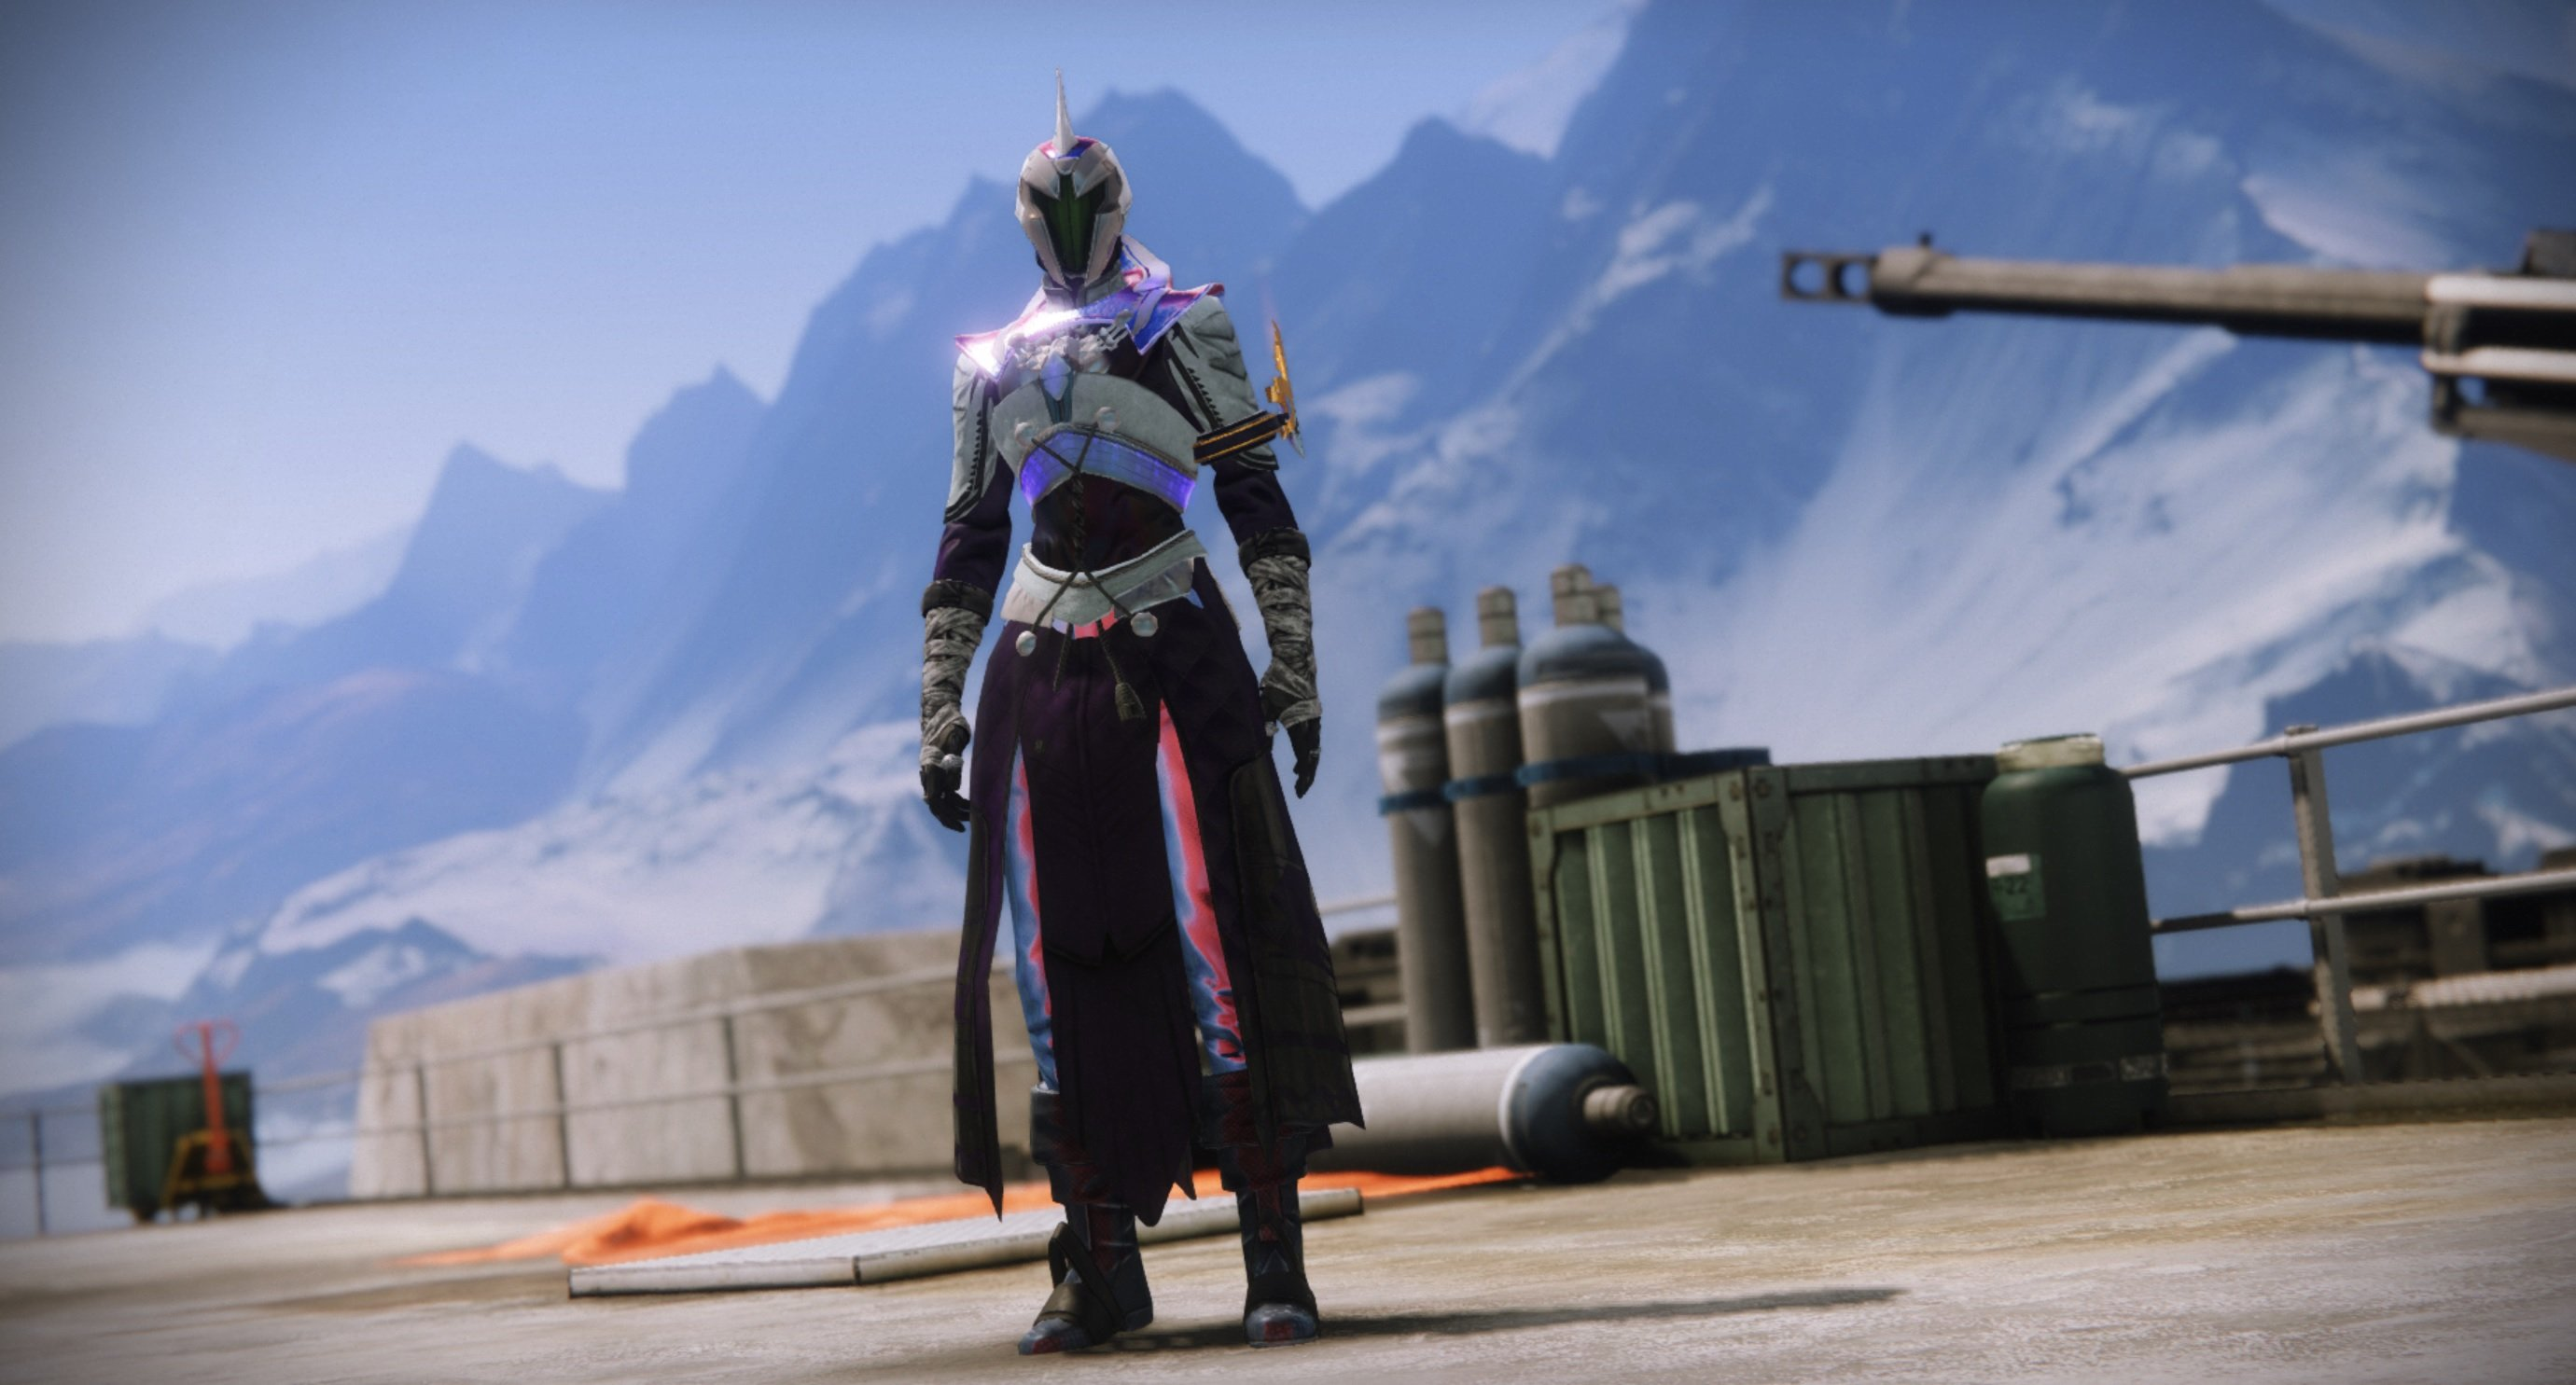 The Destiny 2 transmog grind is worse than we thought, to the point where it needs to be addressed like, soon screenshot